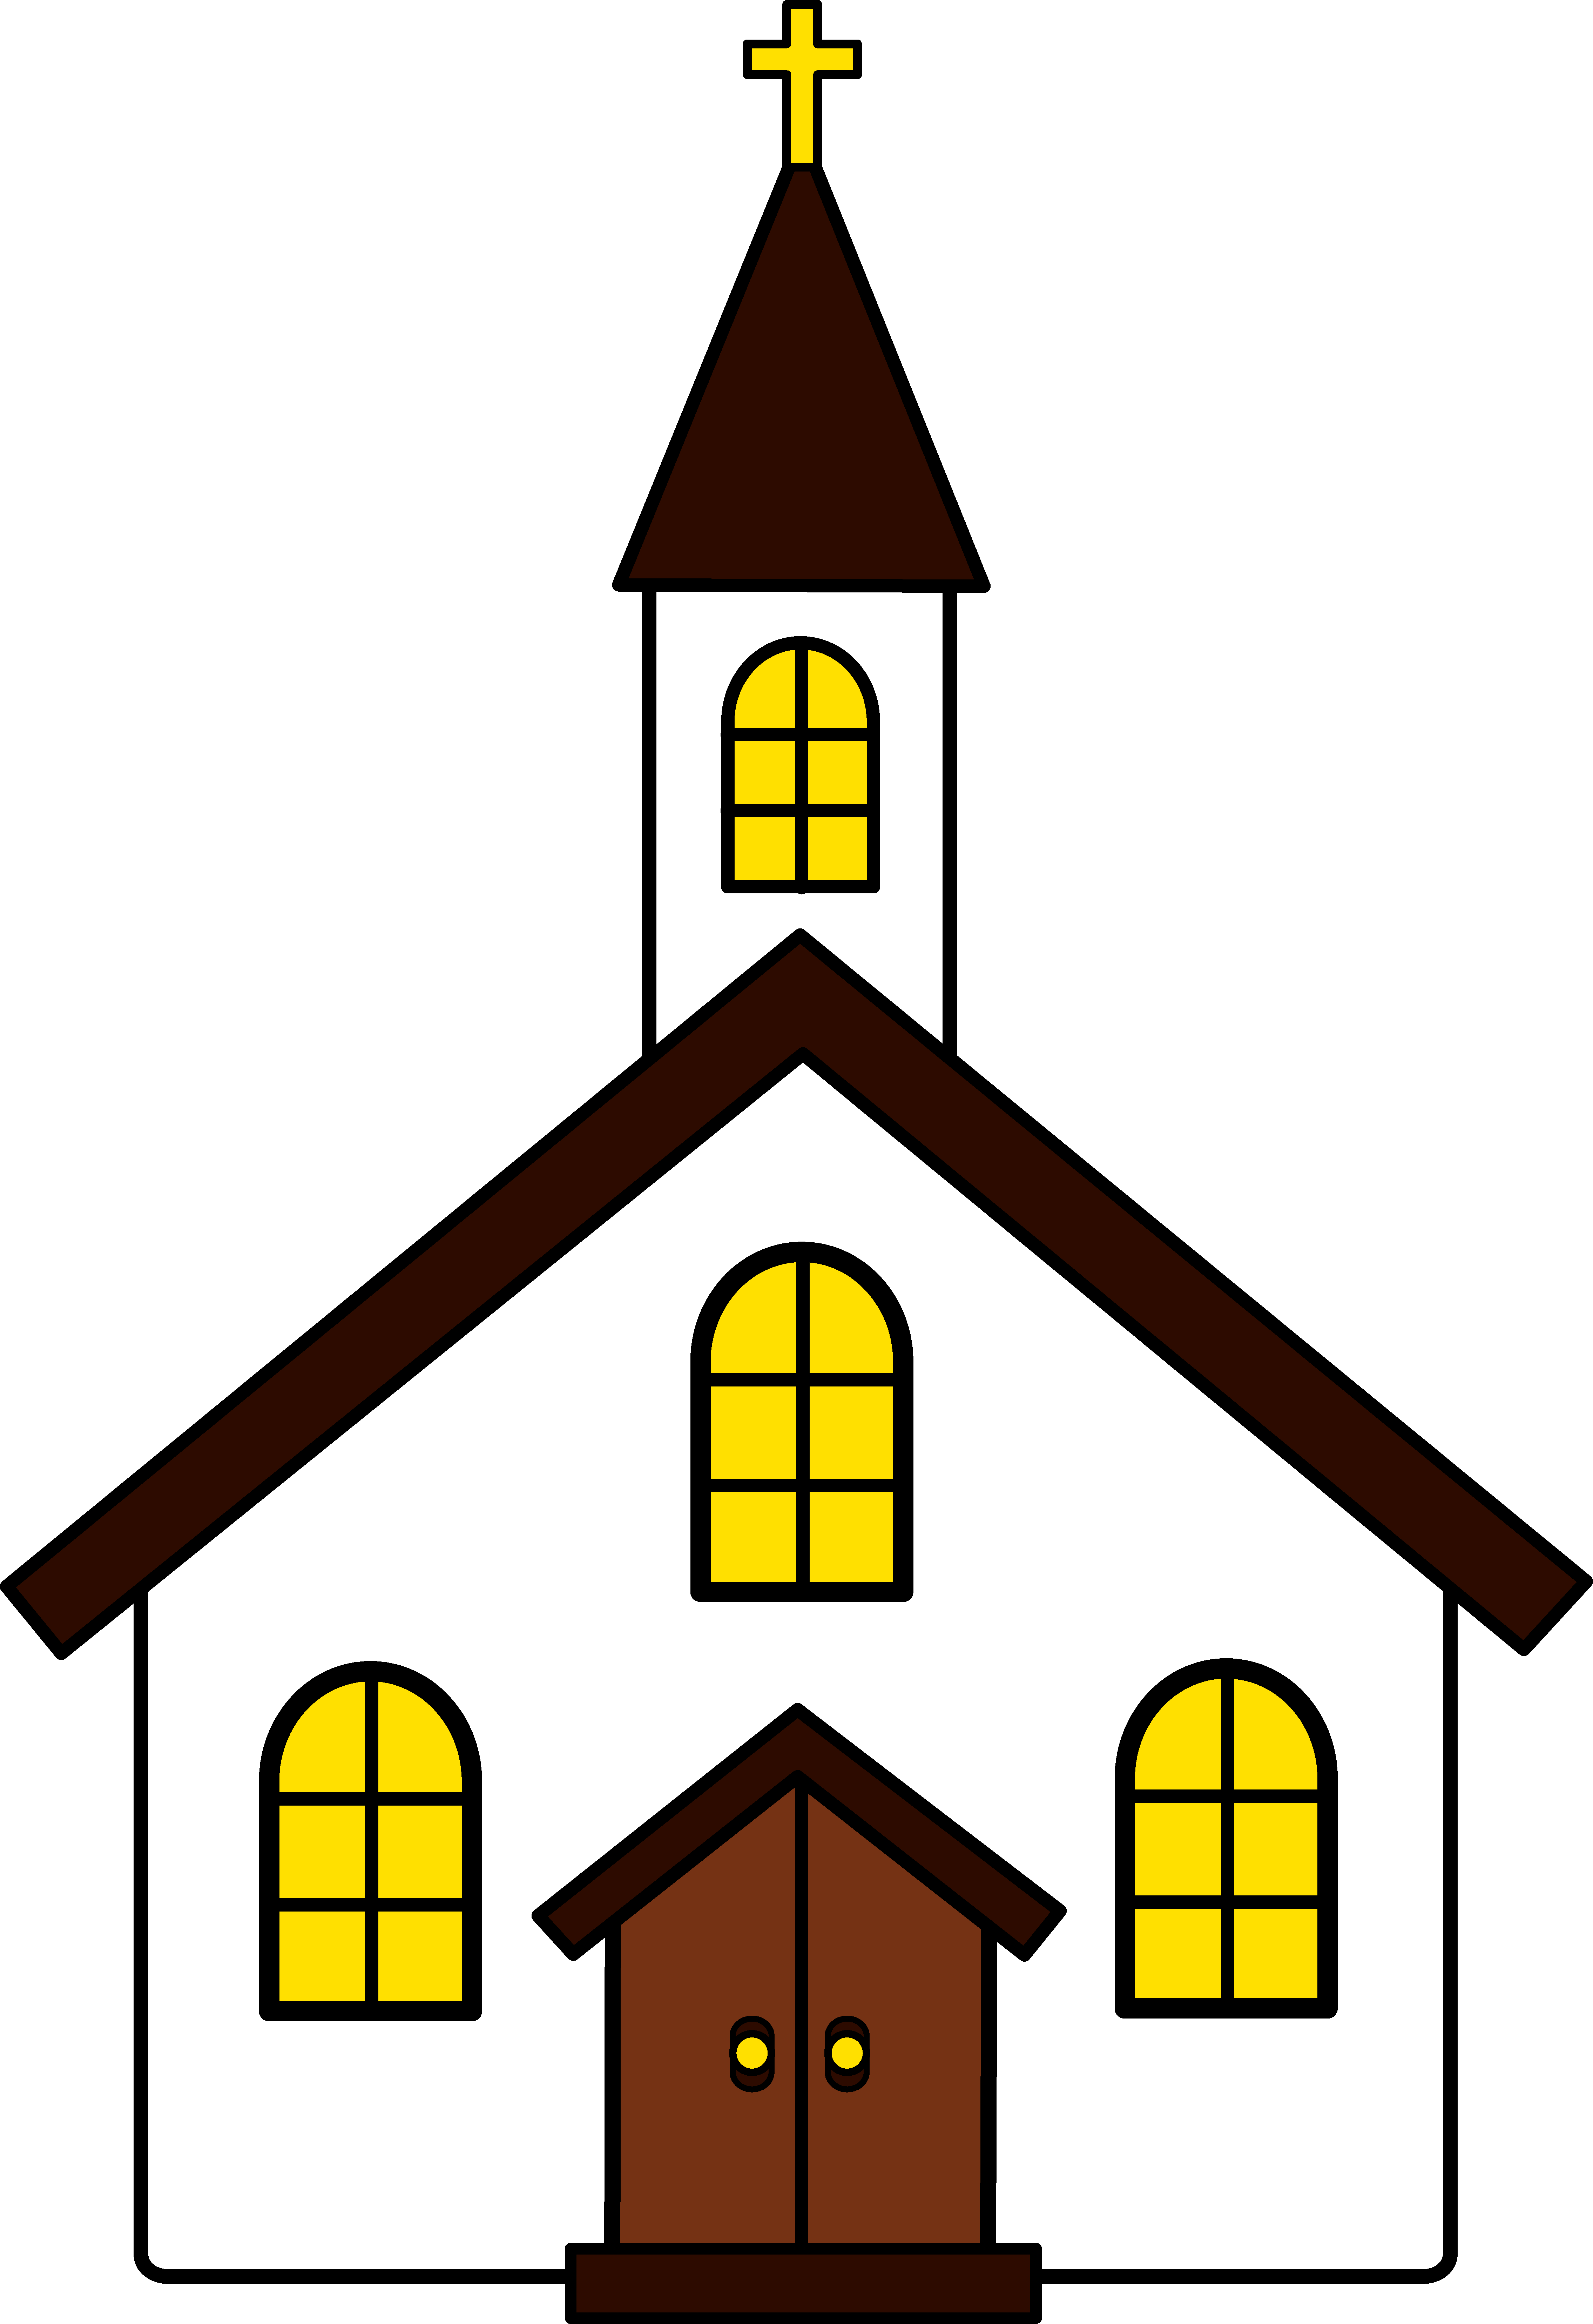 Free Images Church, Download Free Clip Art, Free Clip Art on.